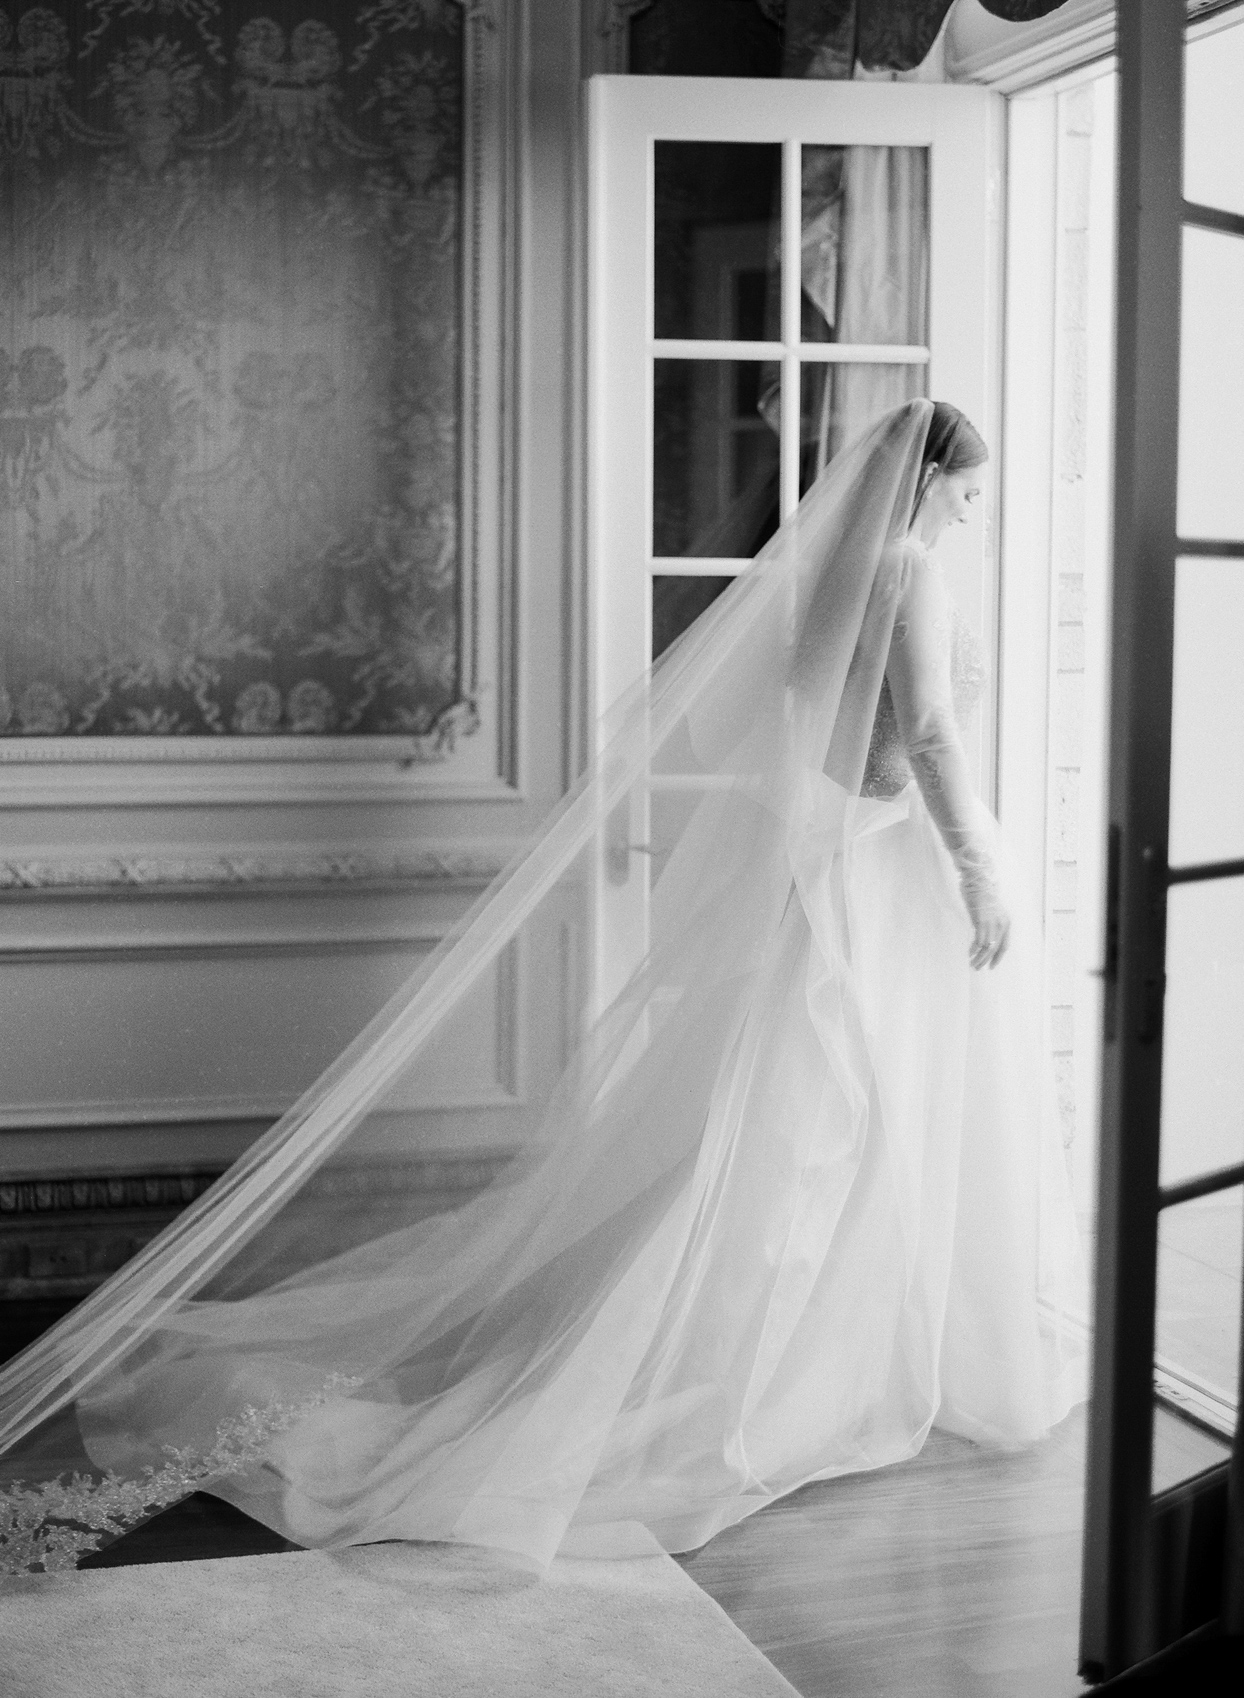 bride walking out french doors with long veil trailing behind her